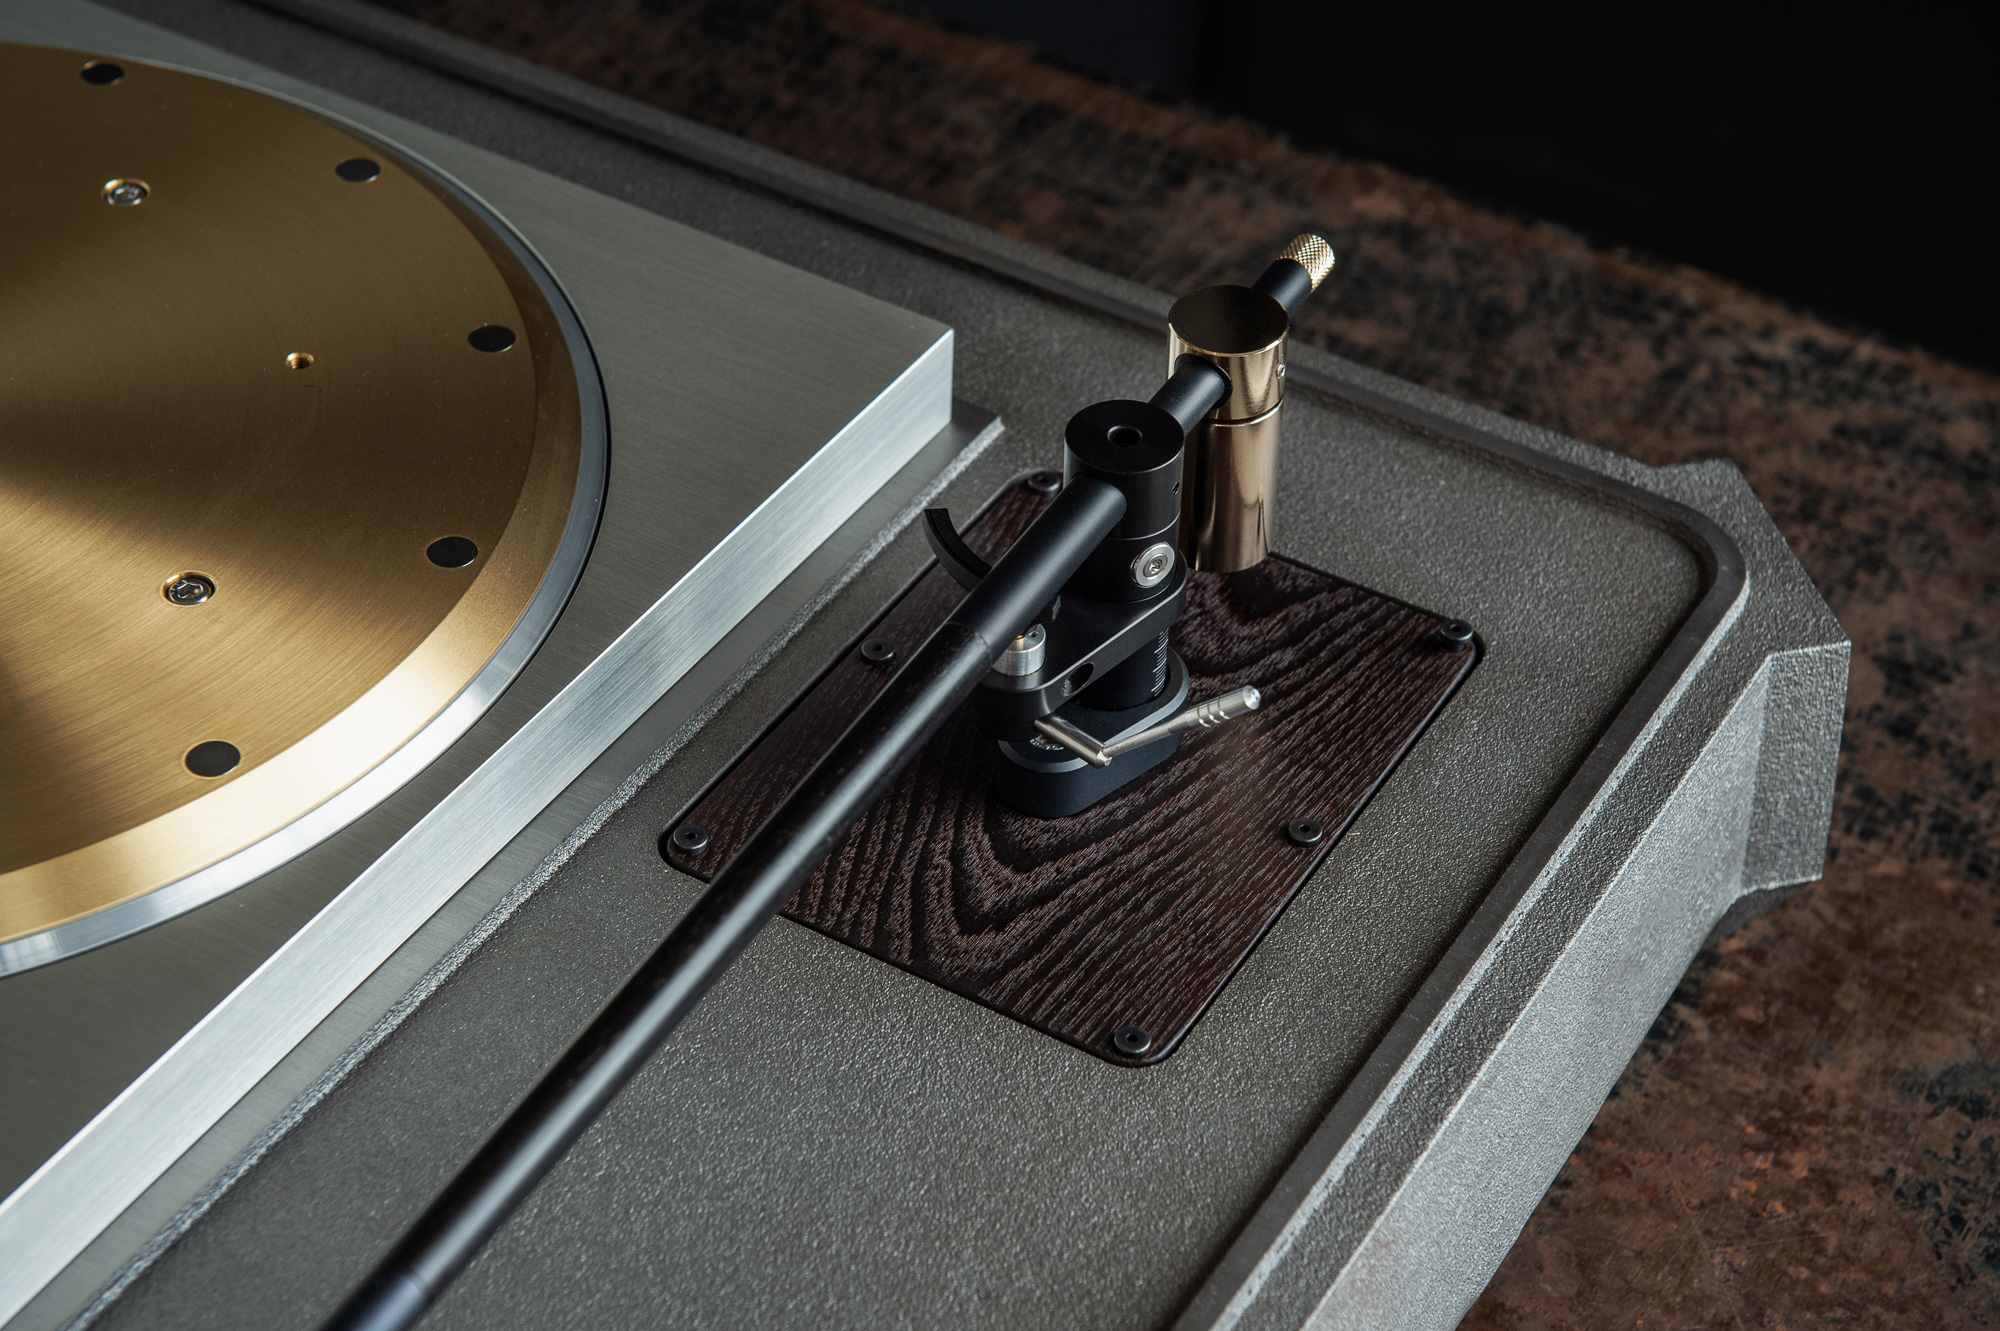 SP10 Plinth System turntable